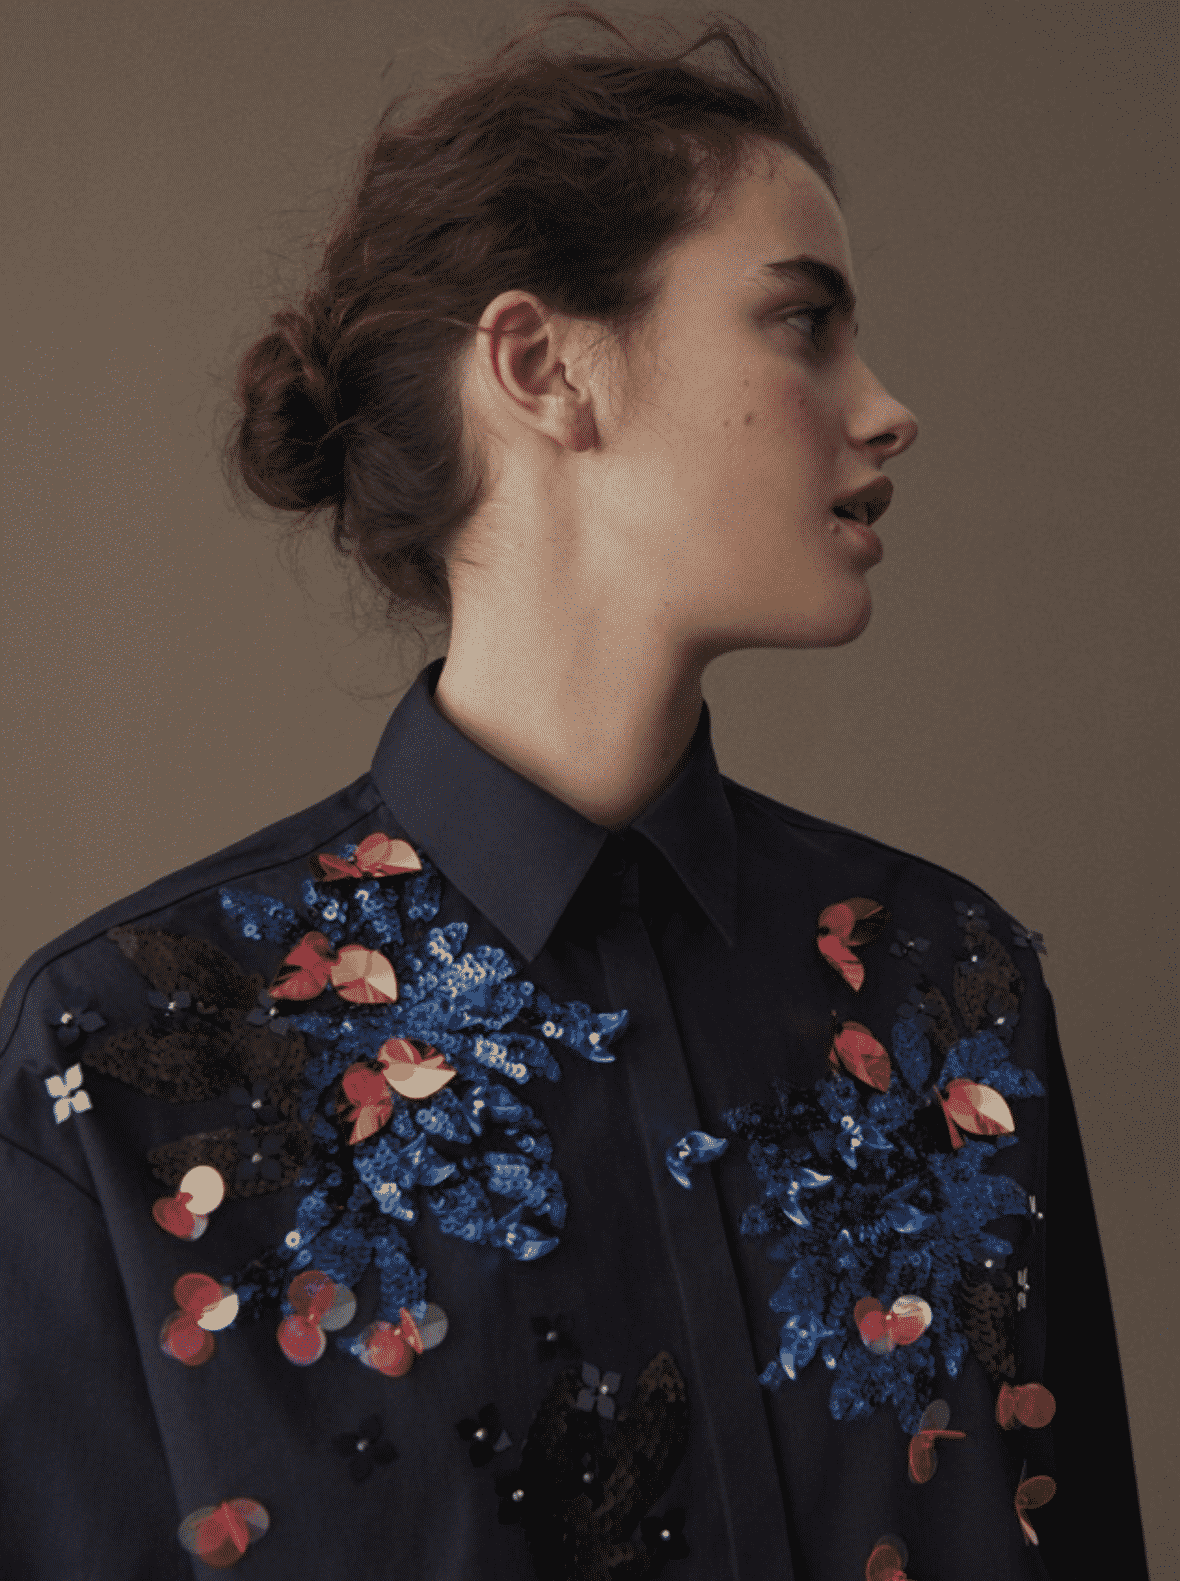 model wearing navy button up top with sequin accents